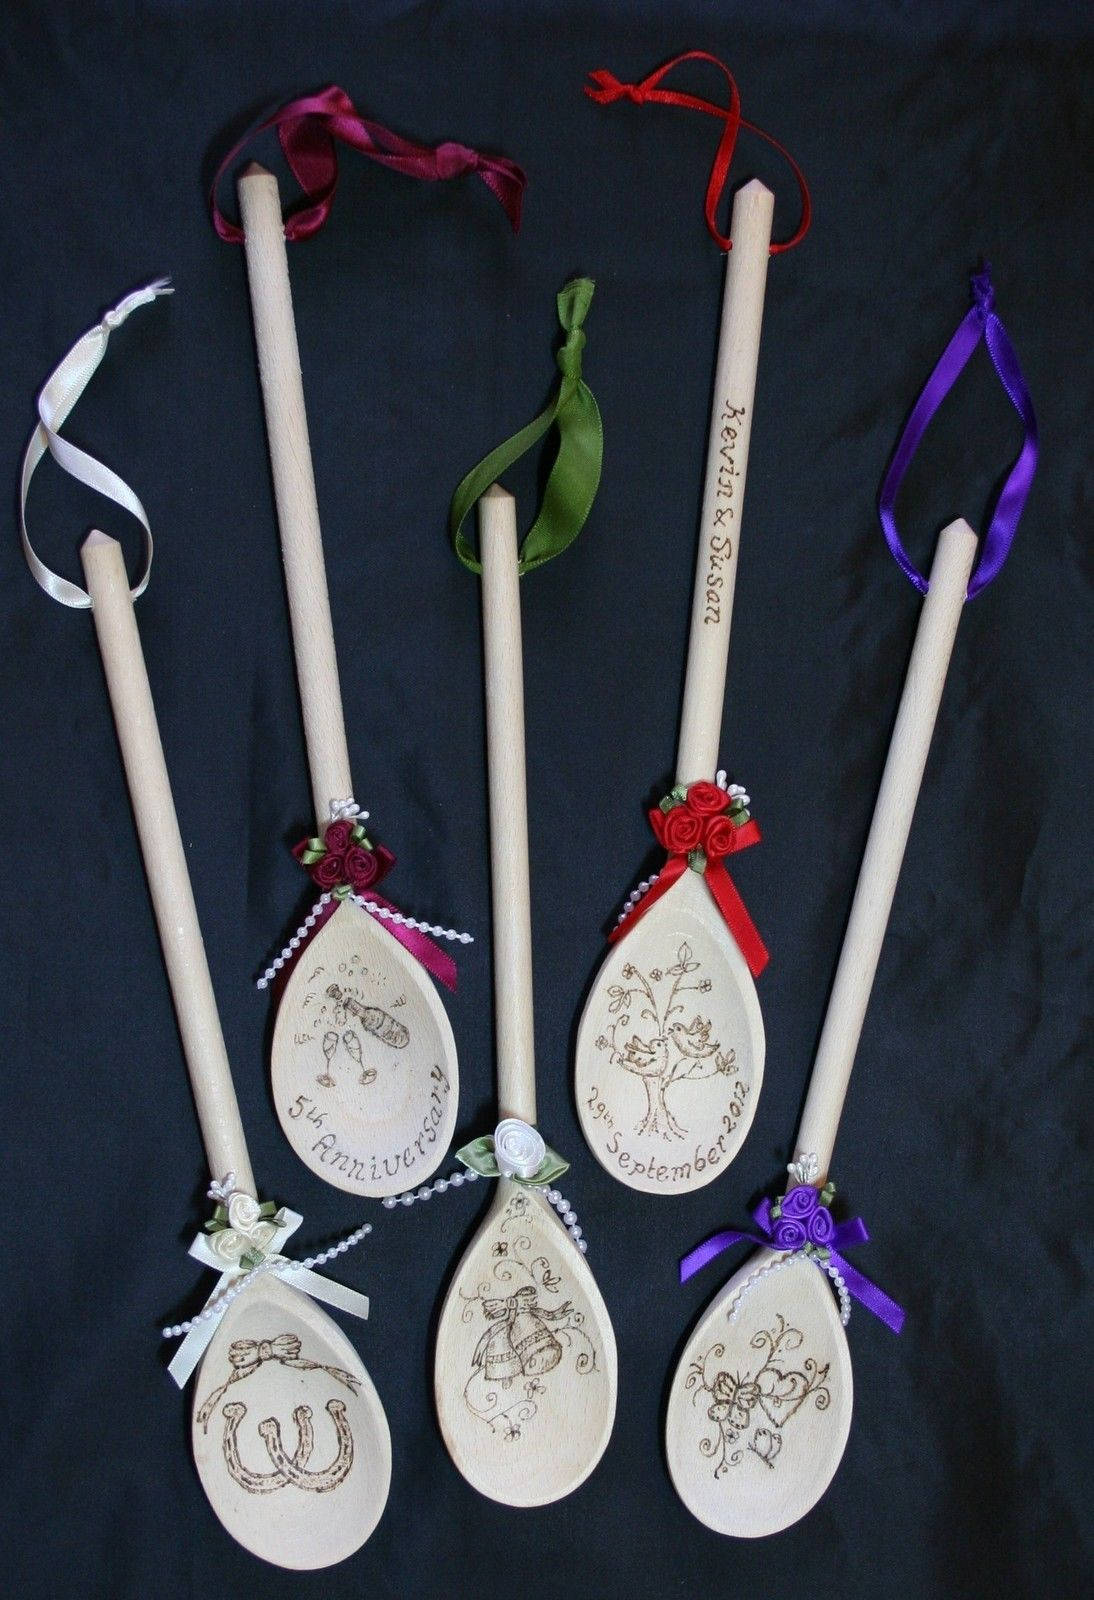 Personalised Wooden Spoon 5Th Wedding Anniversary Any